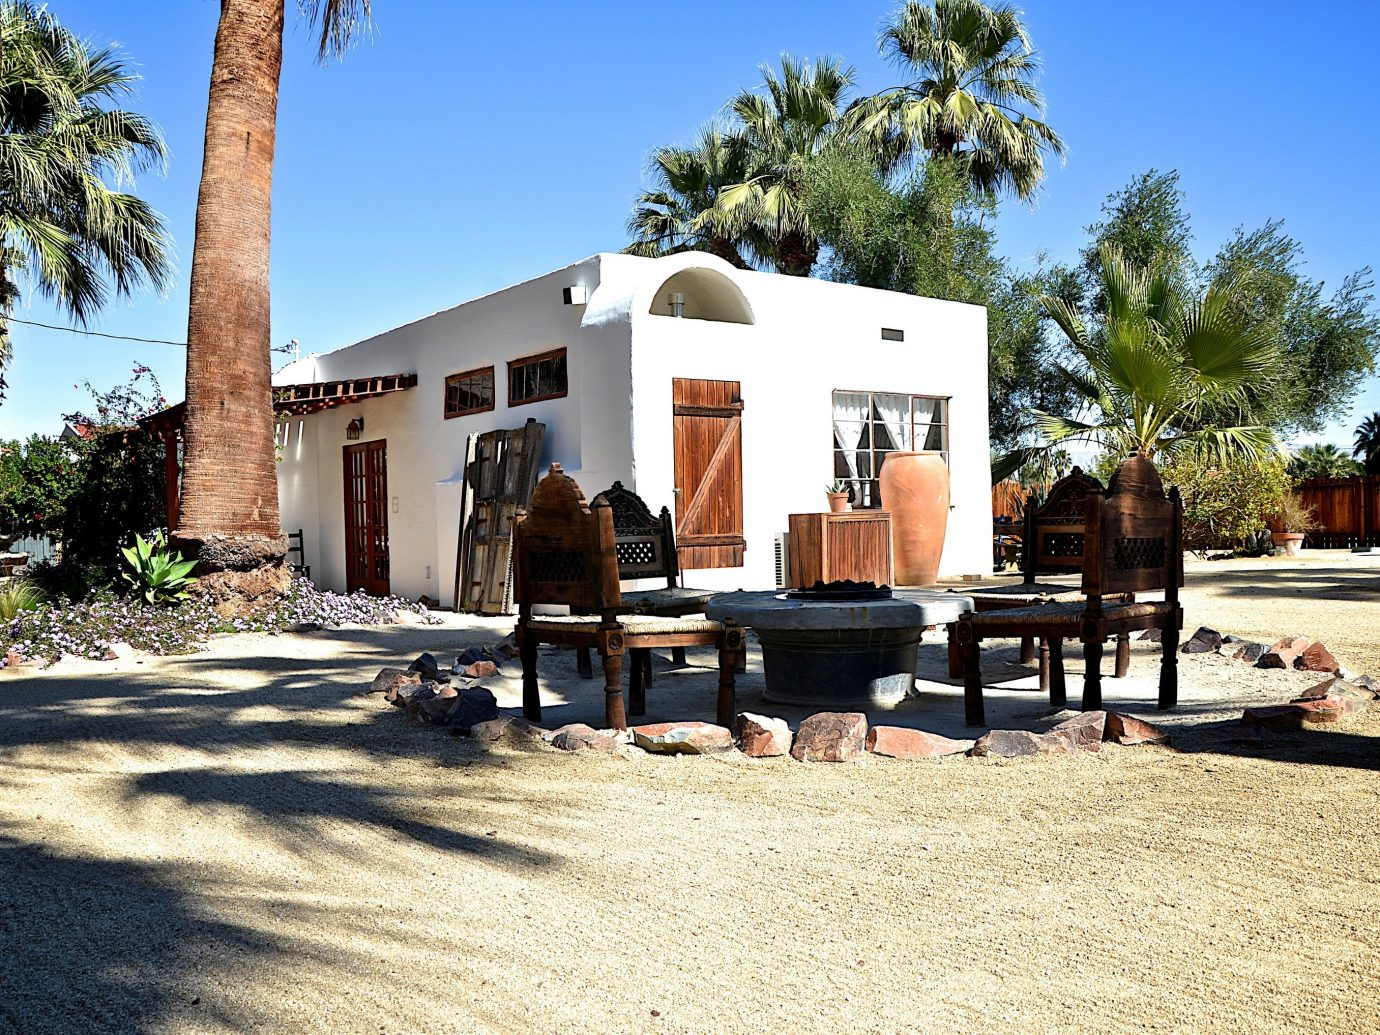 Exterior of Korakia Pensione, Palm Springs California